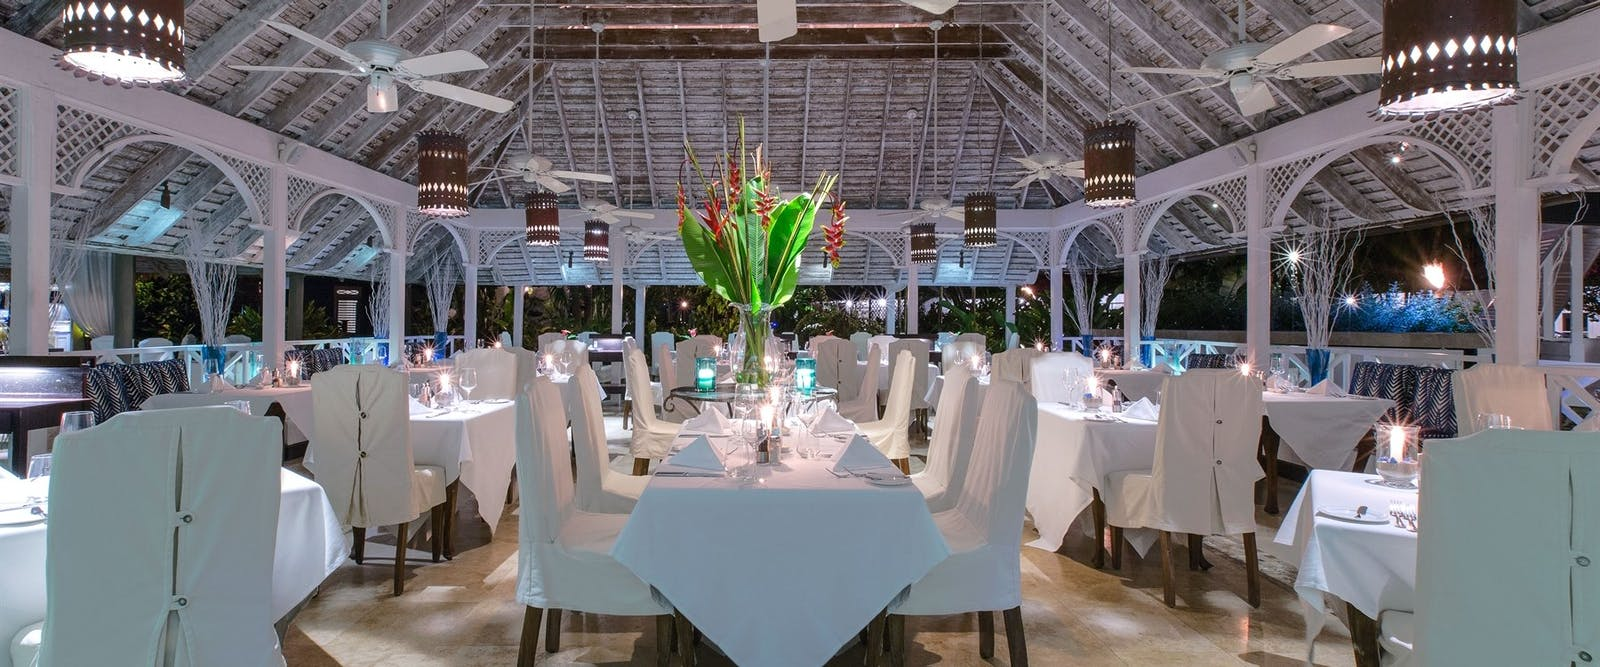 Restaurant at The Sandpiper, Barbados